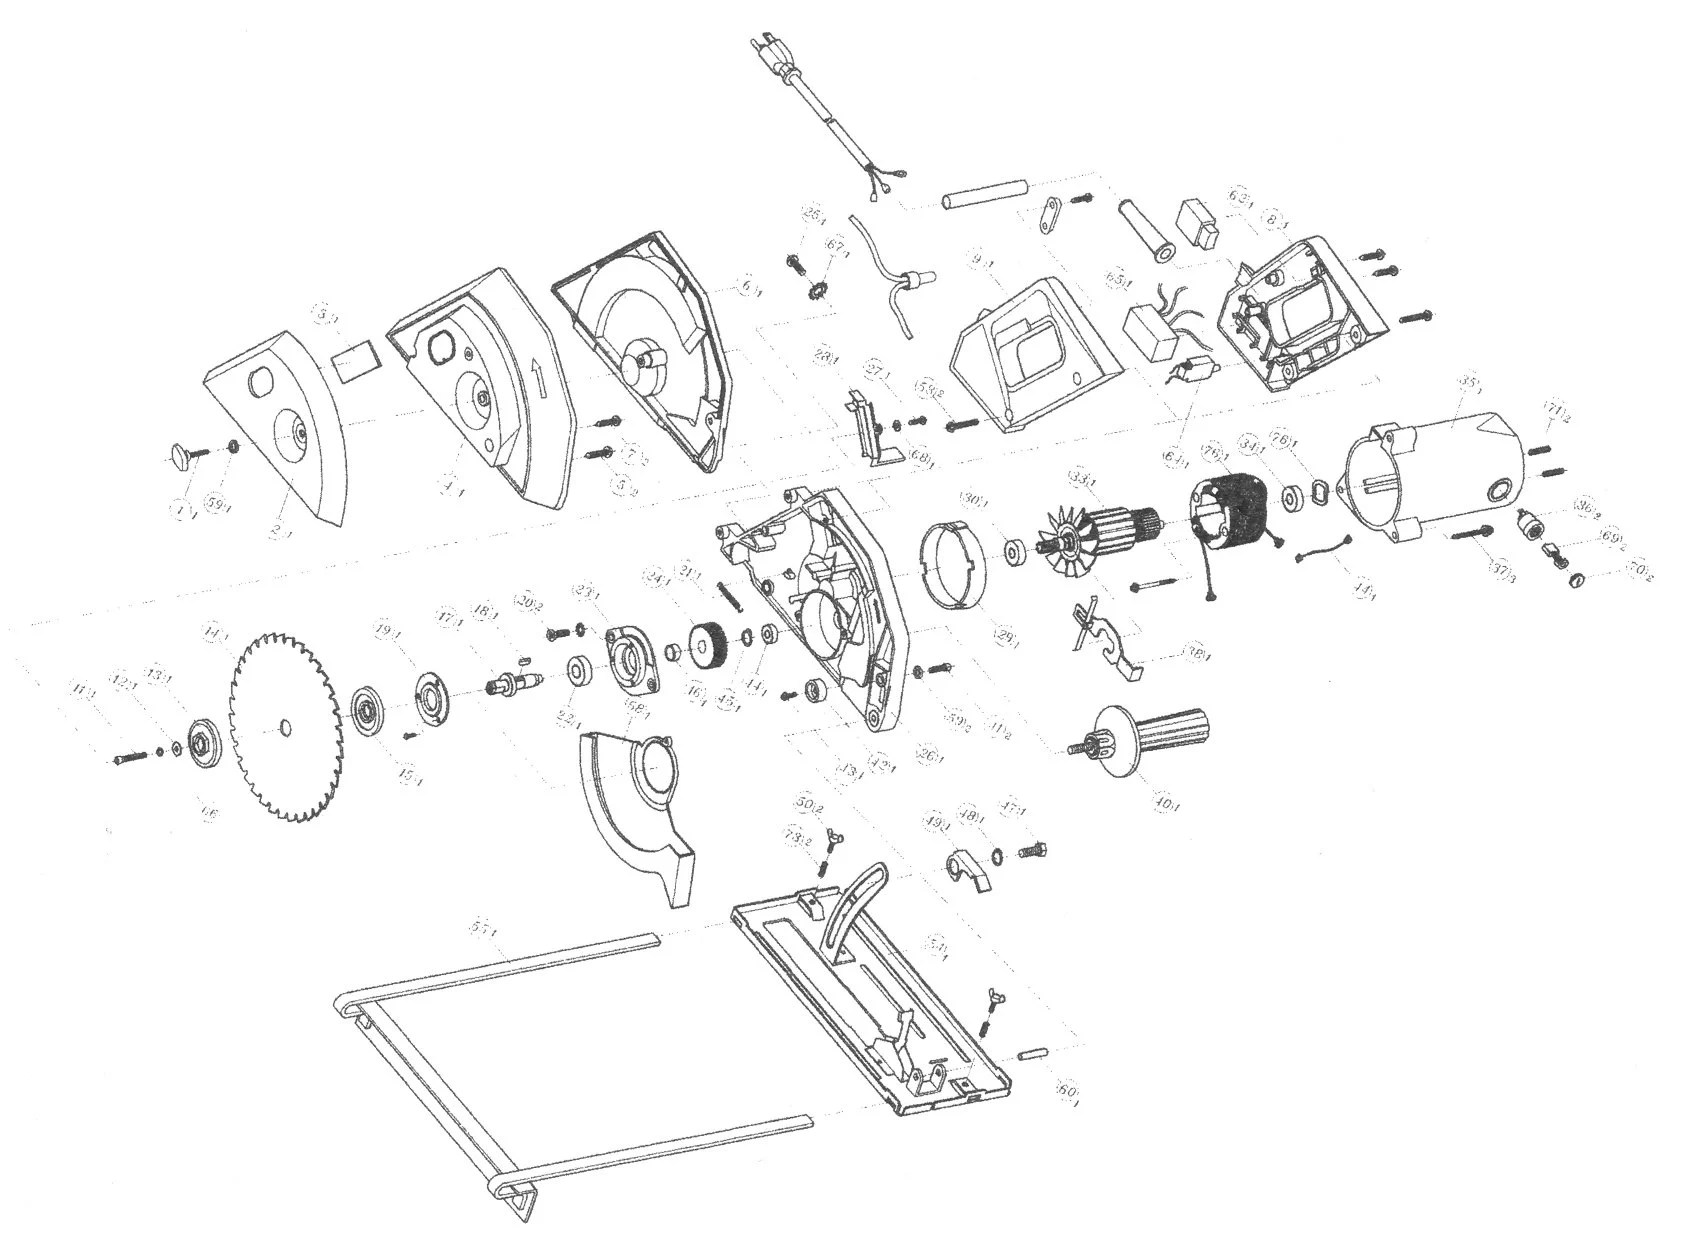 Sip 7 Metal Cutting Saw Diagram